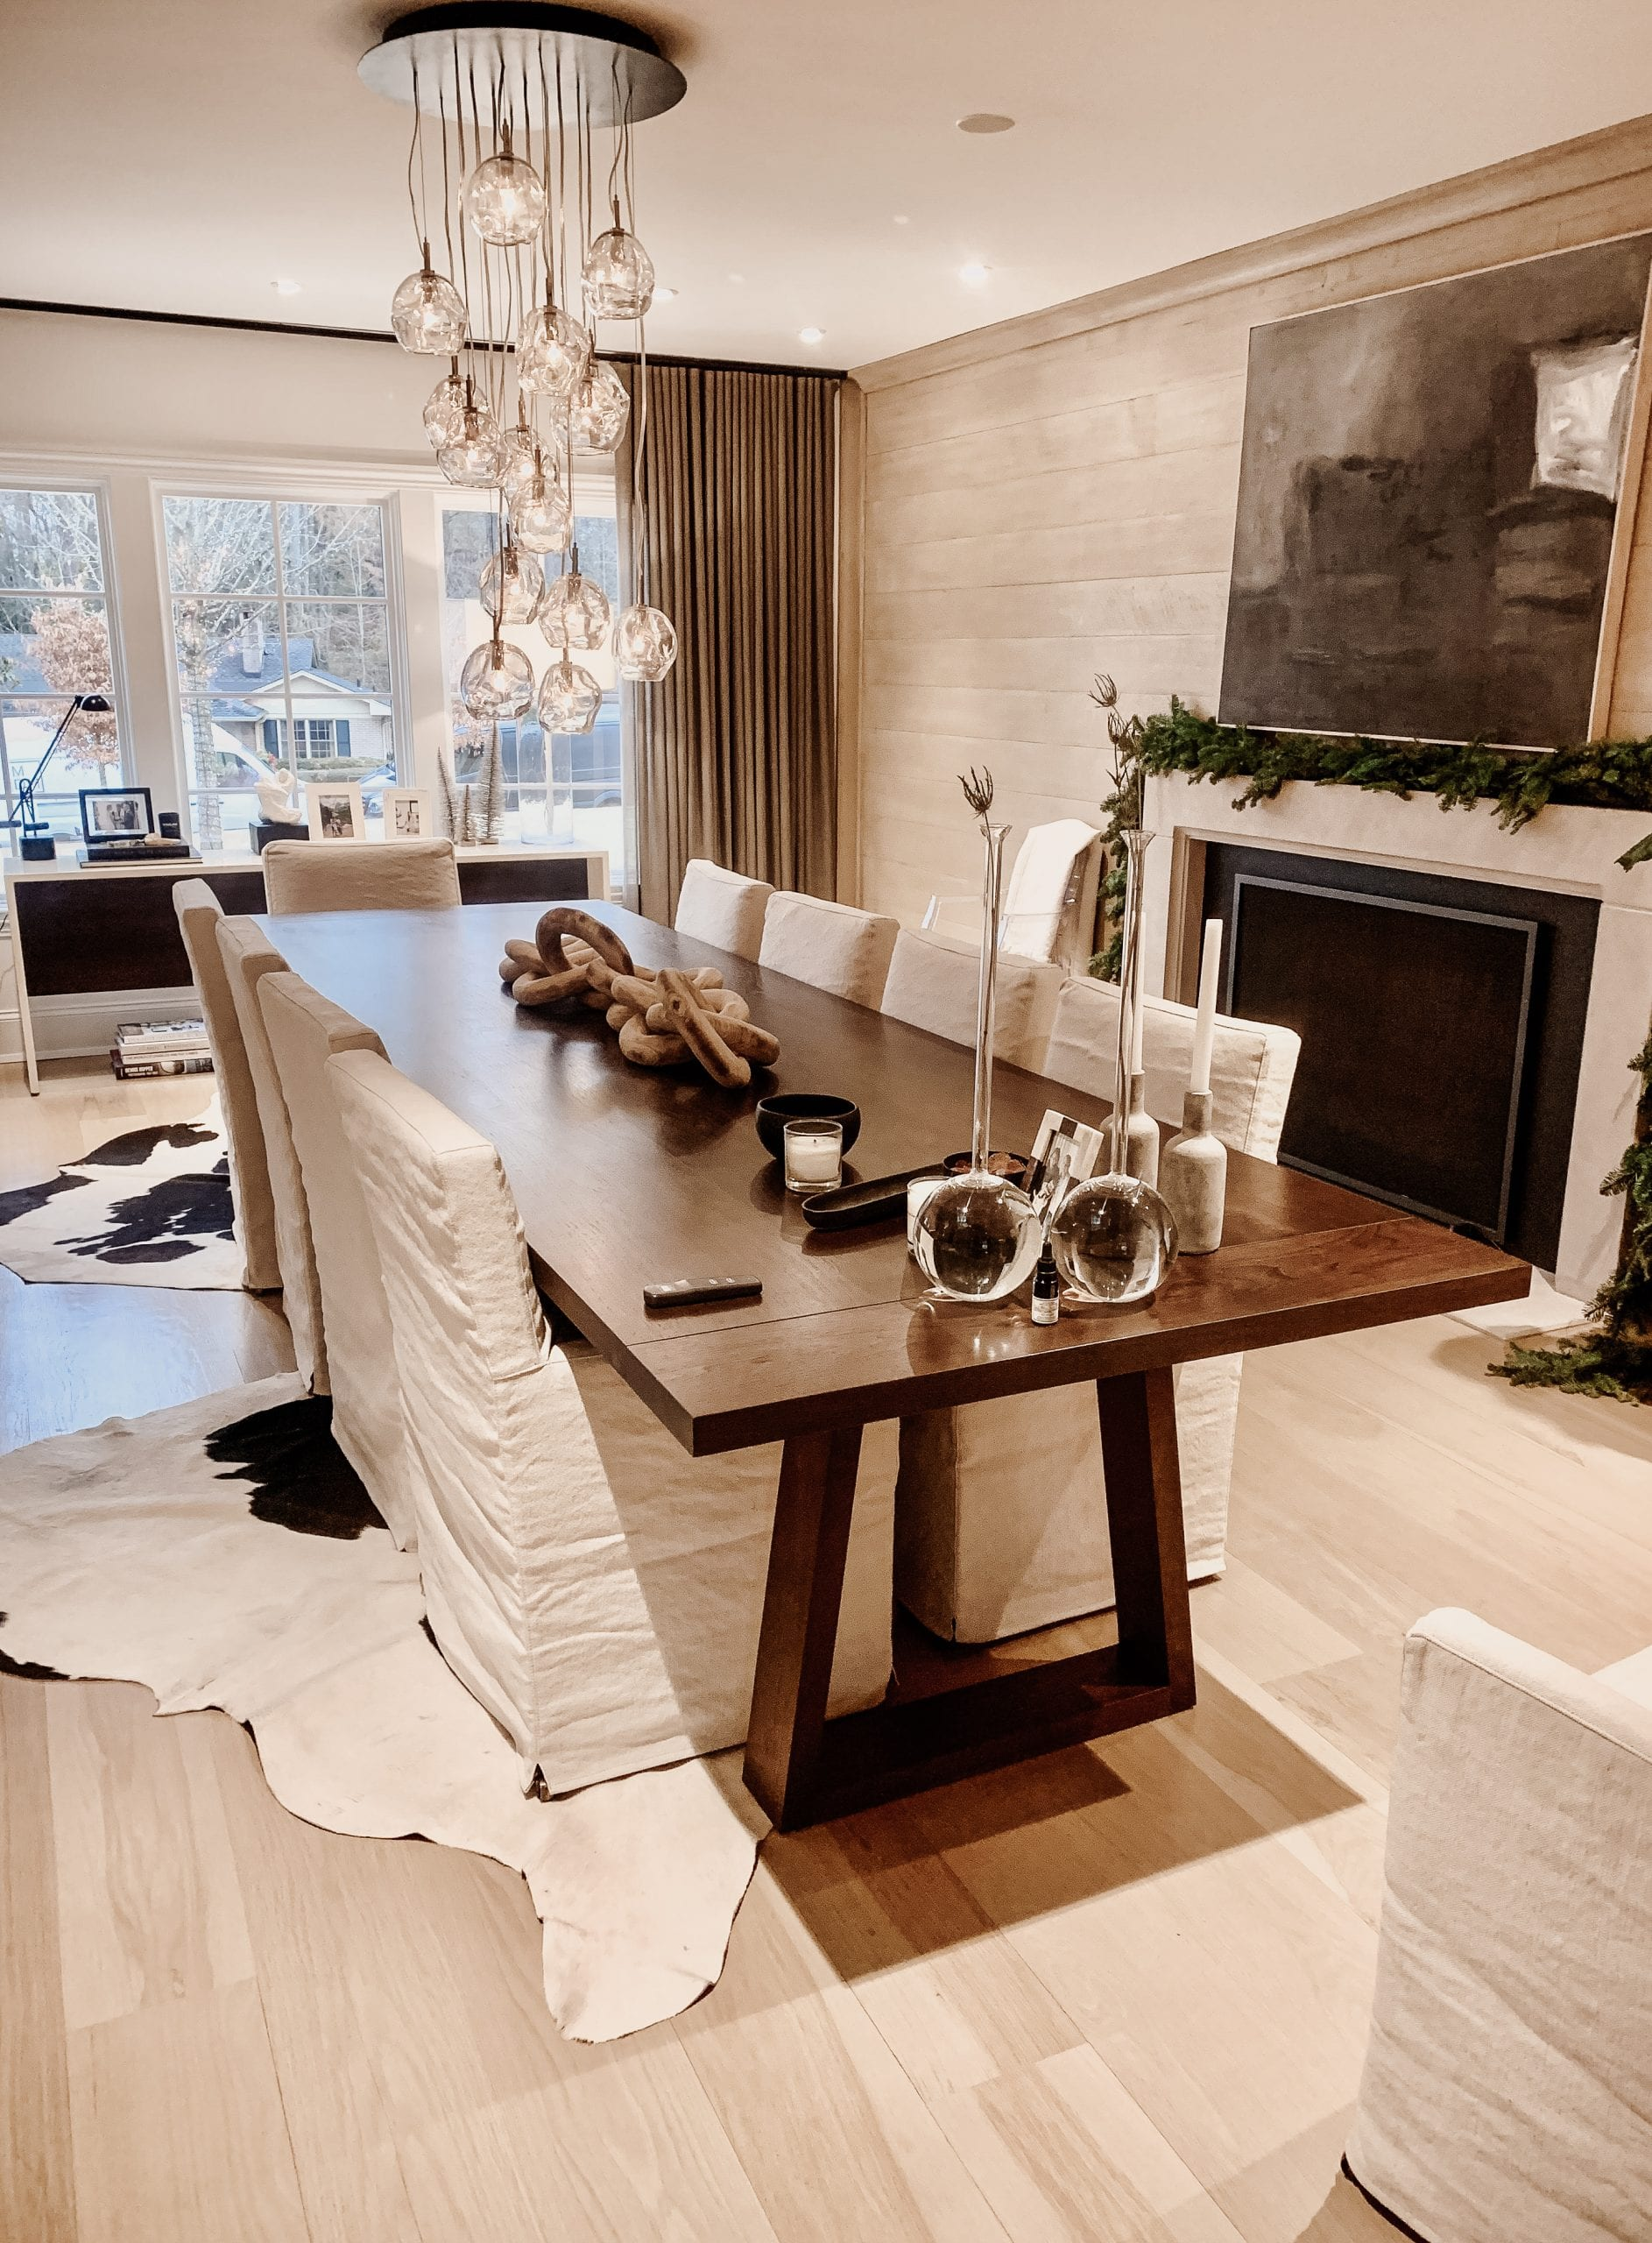 Big Walnut dining table for 10